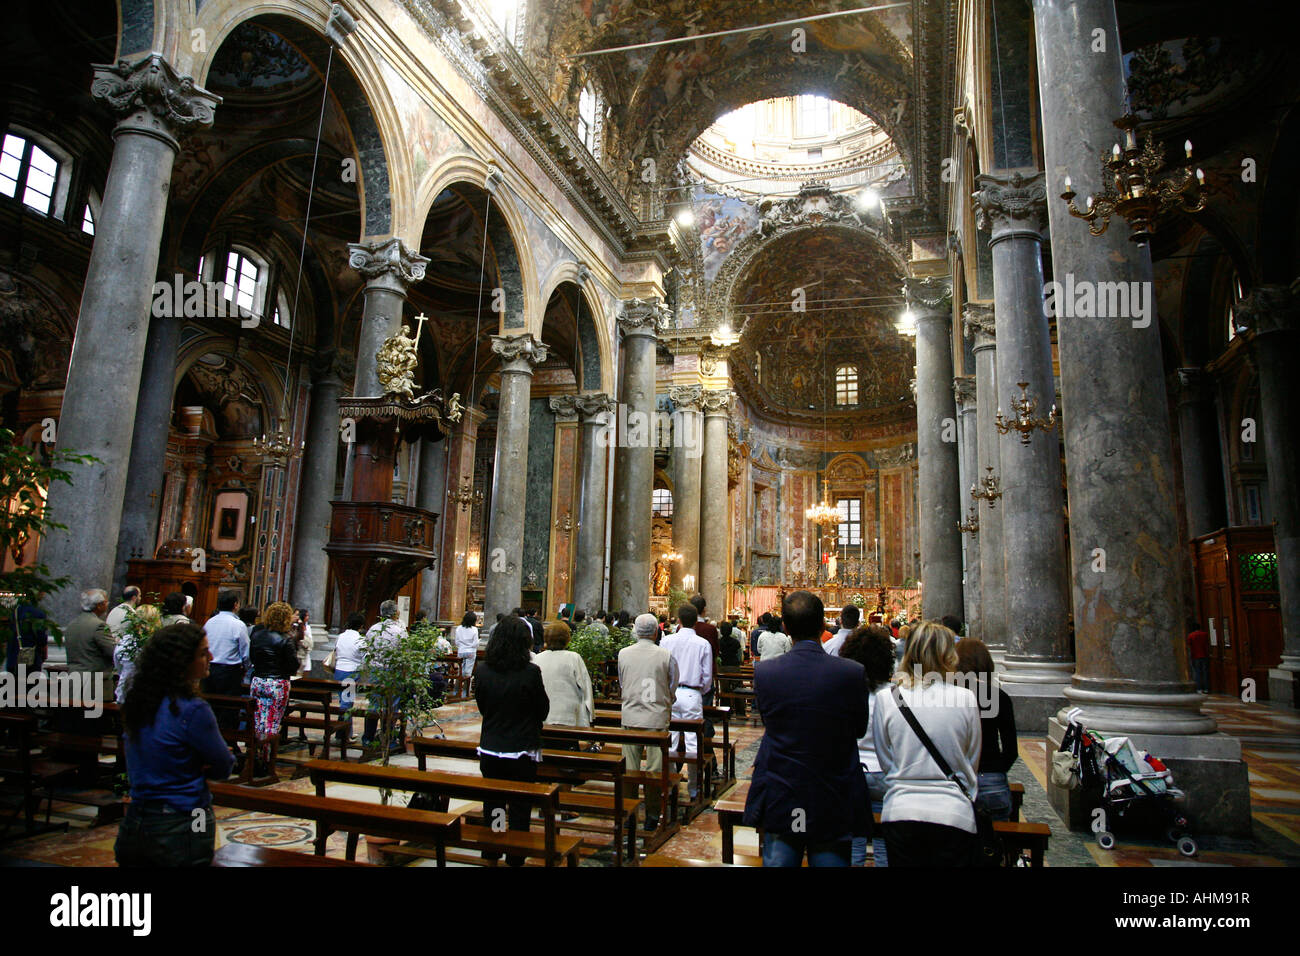 People attending a mass at San Giuseppe dei Teatini church Palermo Sicily - Stock Image